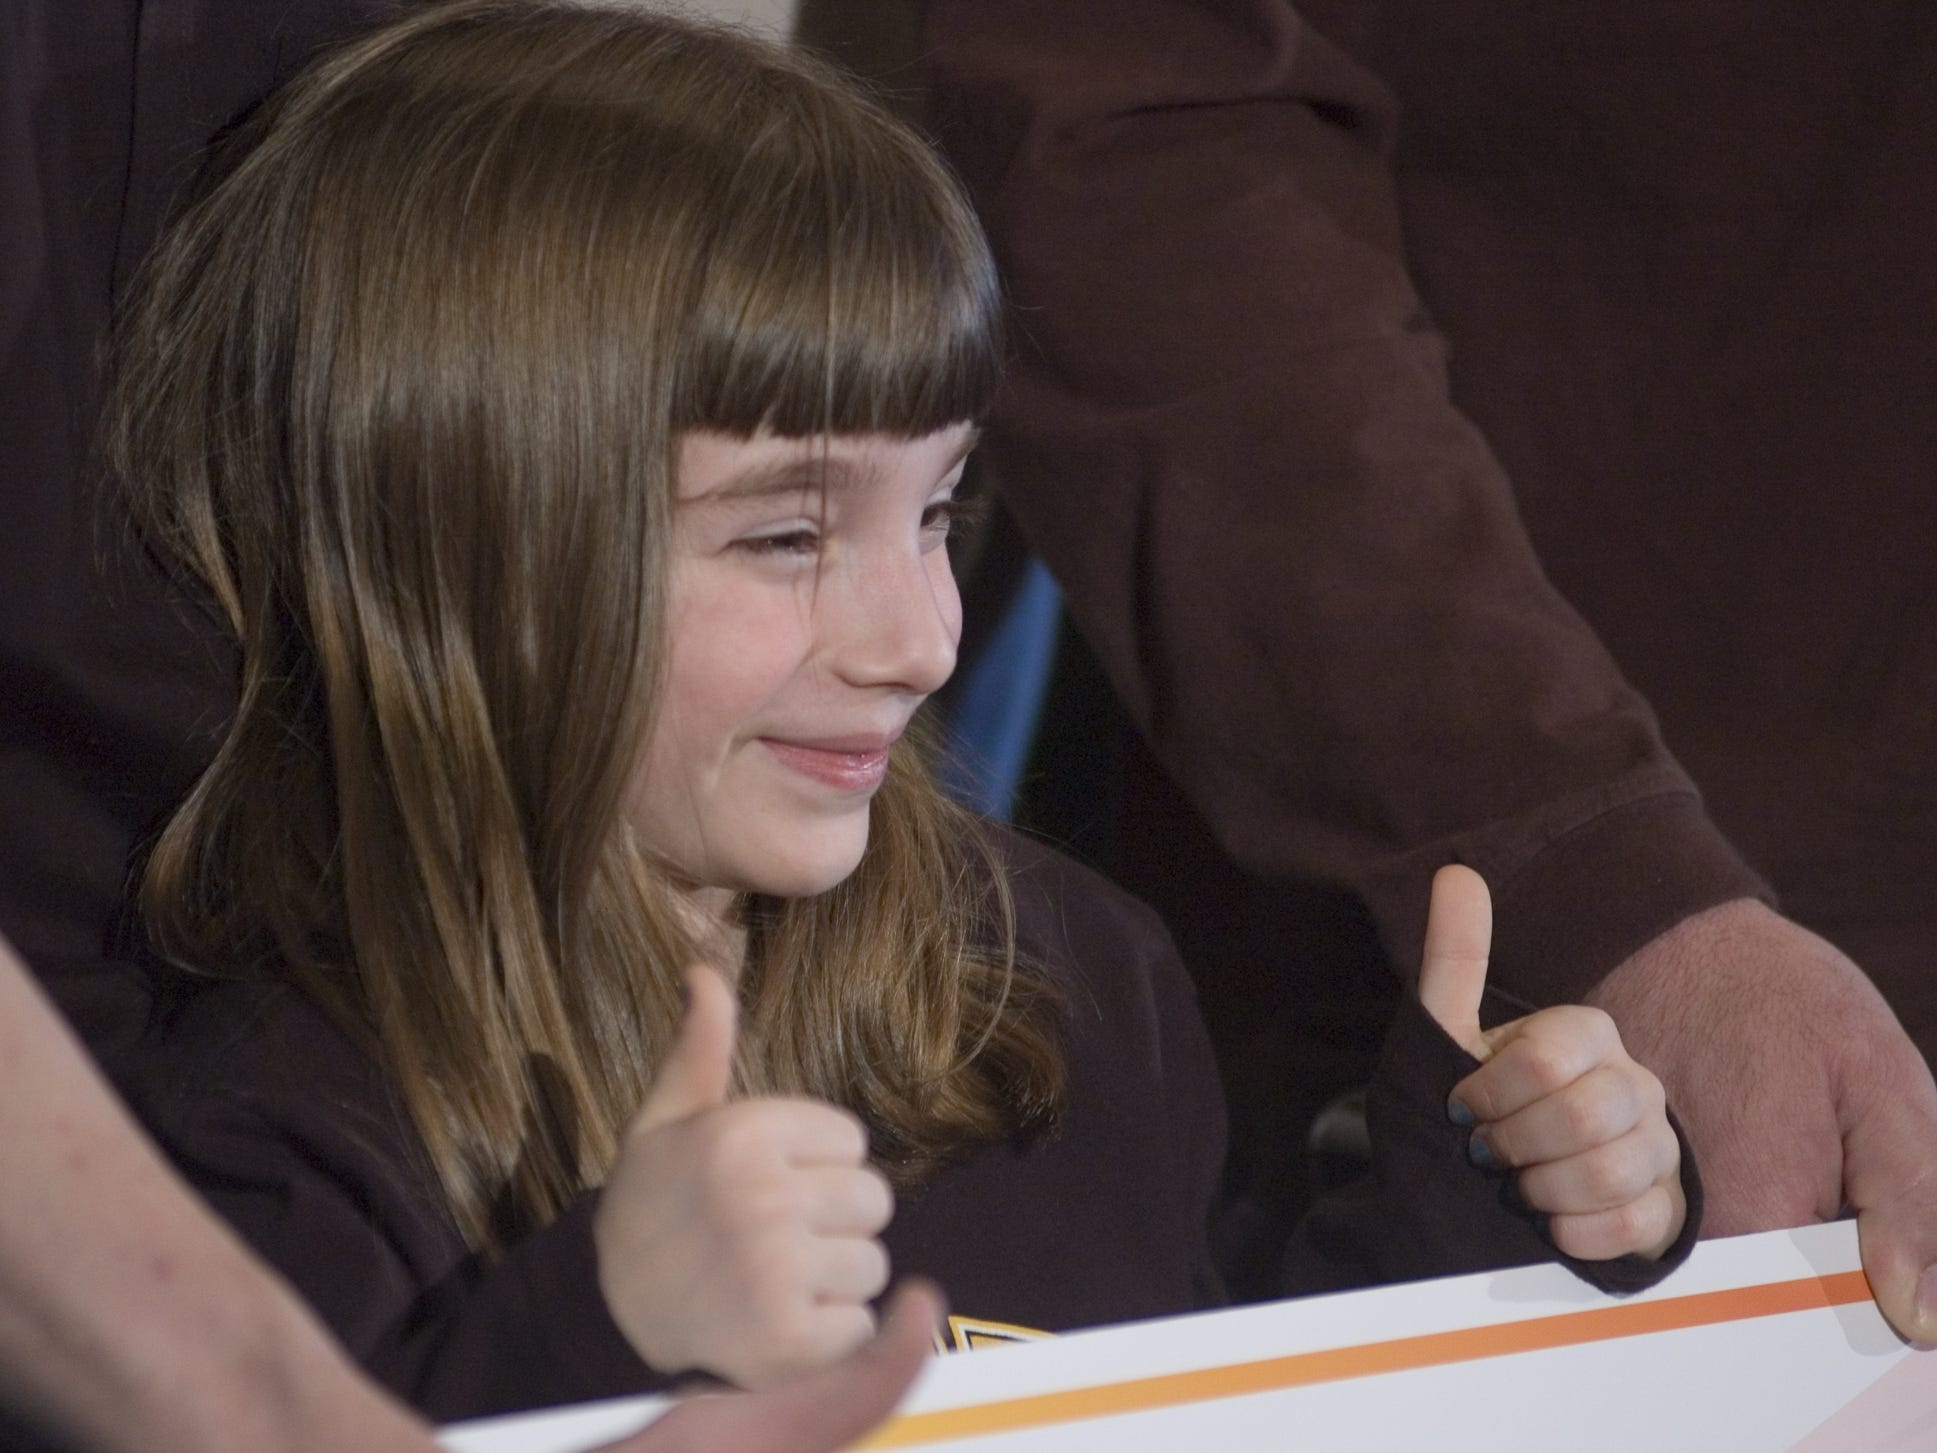 February 2007: Indianola's John Hall won a Hot Lotto prize worth $19.97 million. Here, Hall's 7-year-old daughter Jessica gives the thumbs-up sign at the news conference after her father claimed the prize.